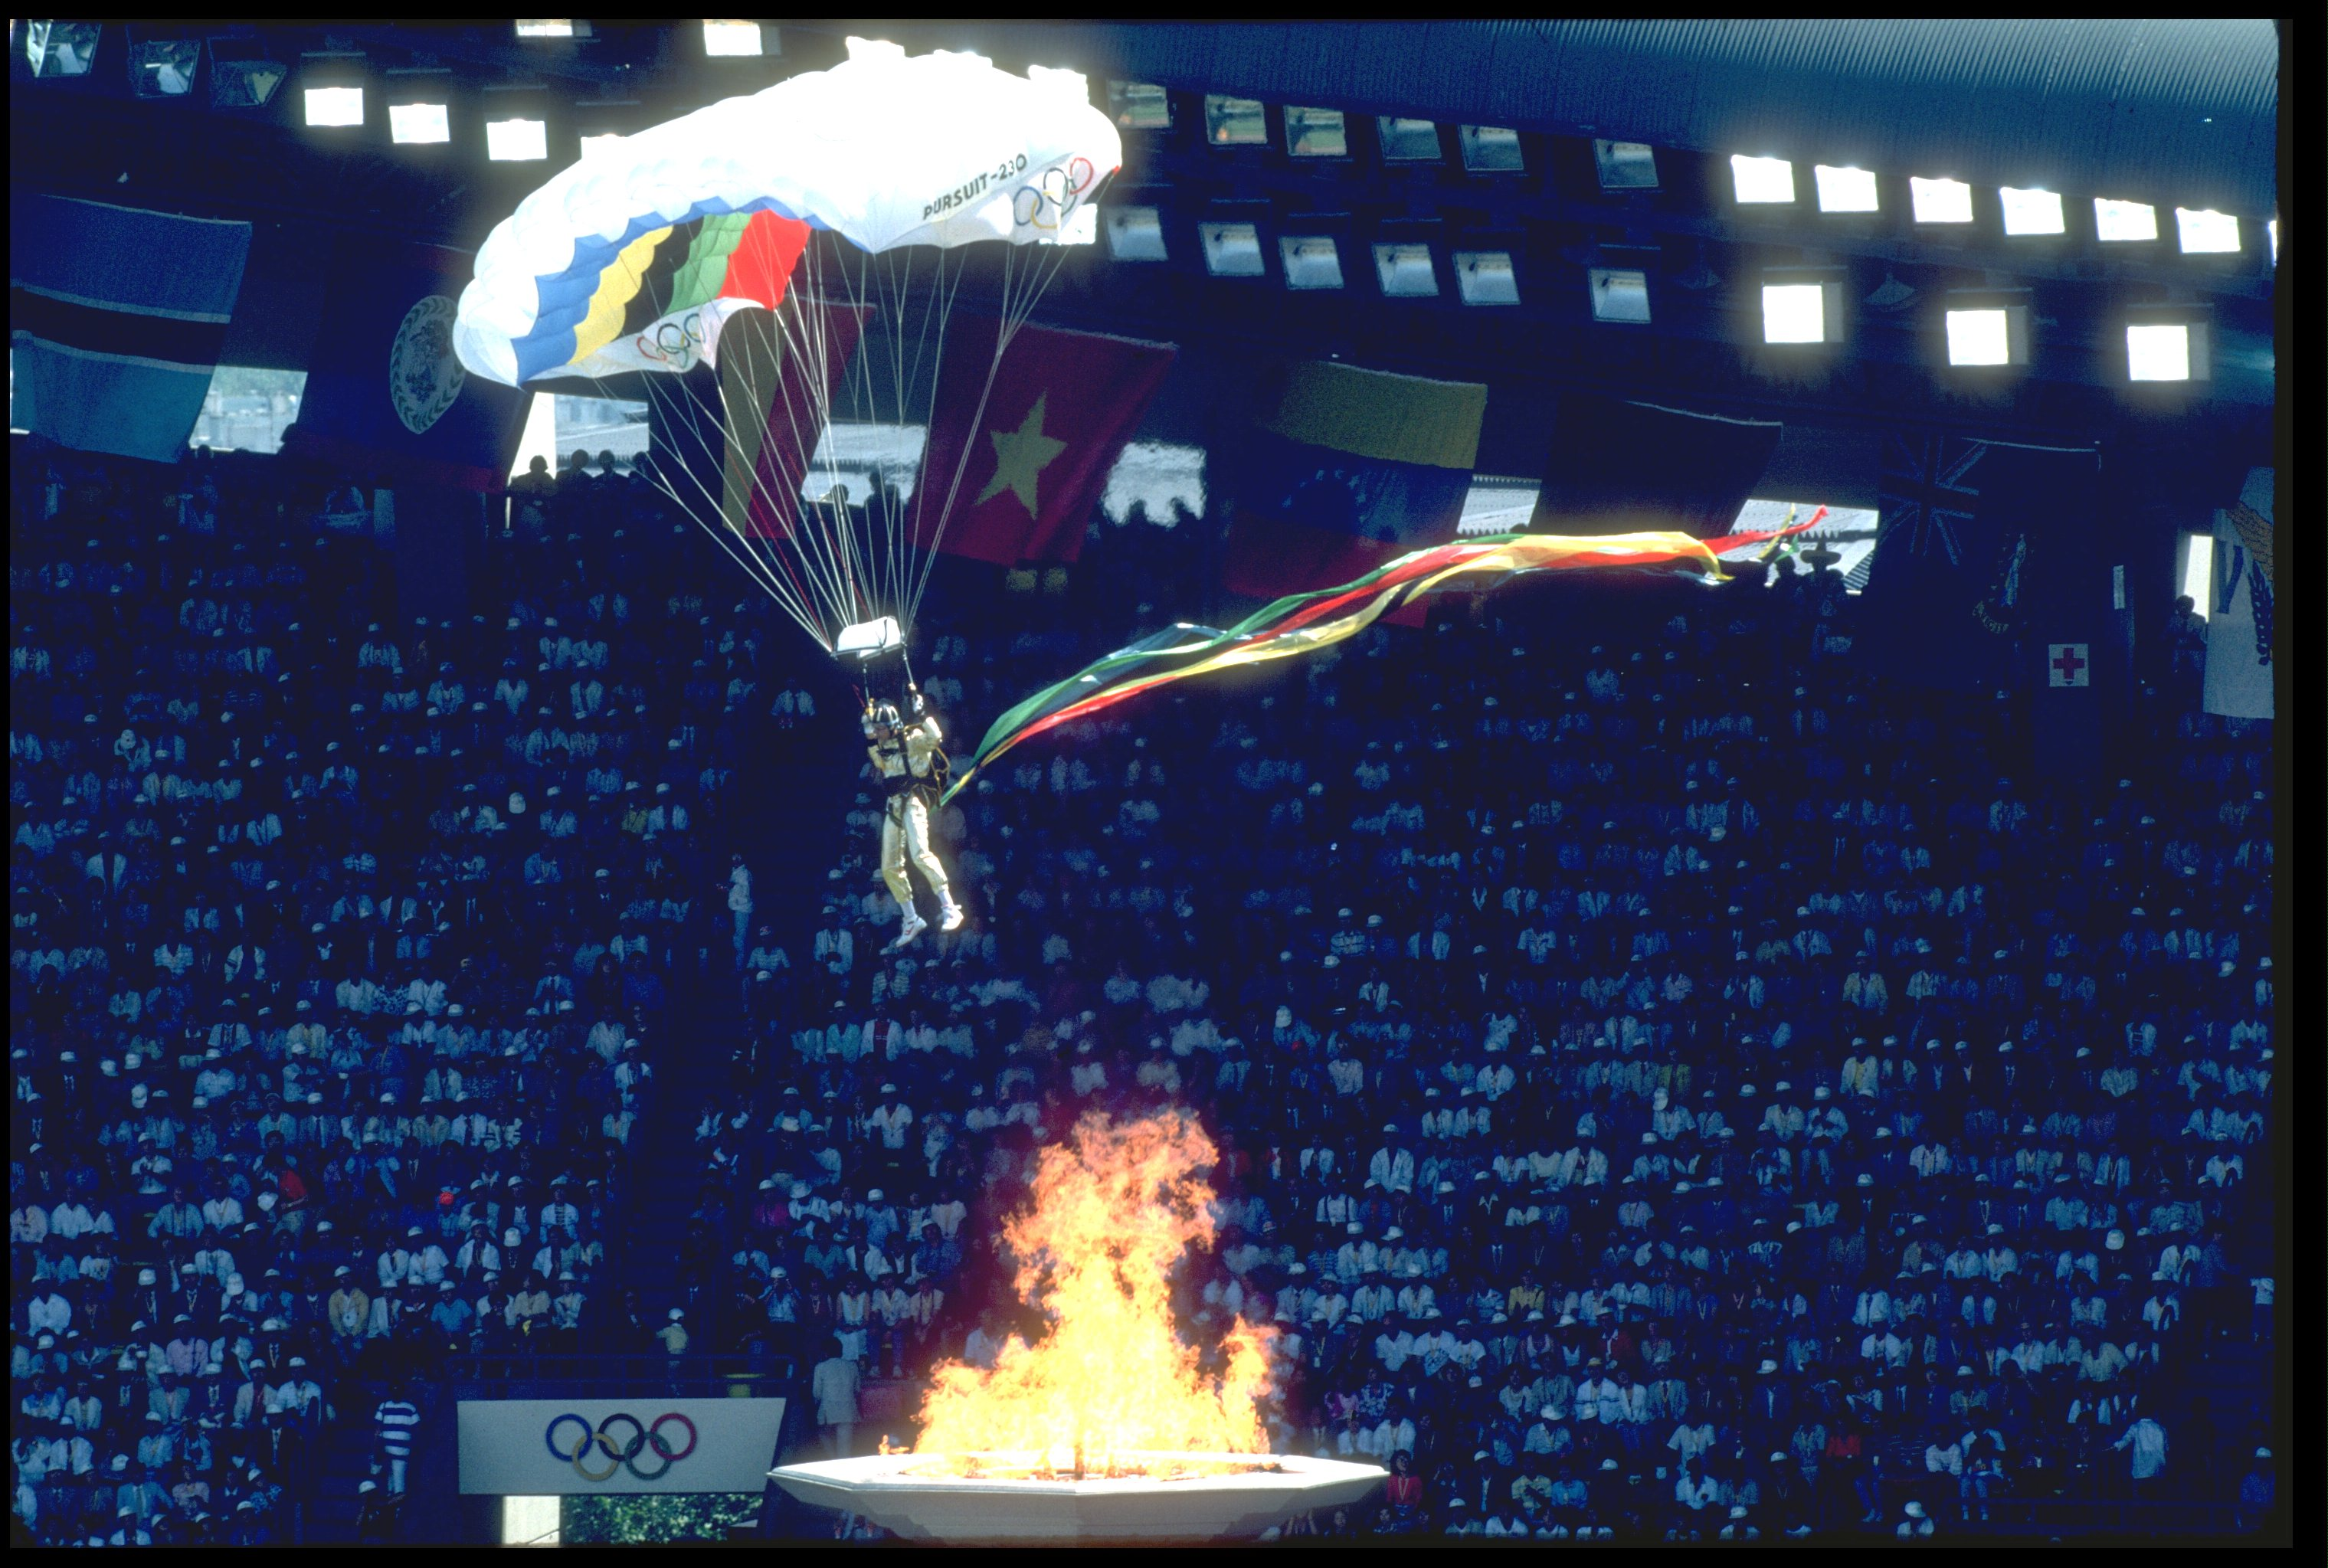 A skydiver parachutes into the Olympic stadium during the opening ceremony of the 1988 Seoul Olympics.